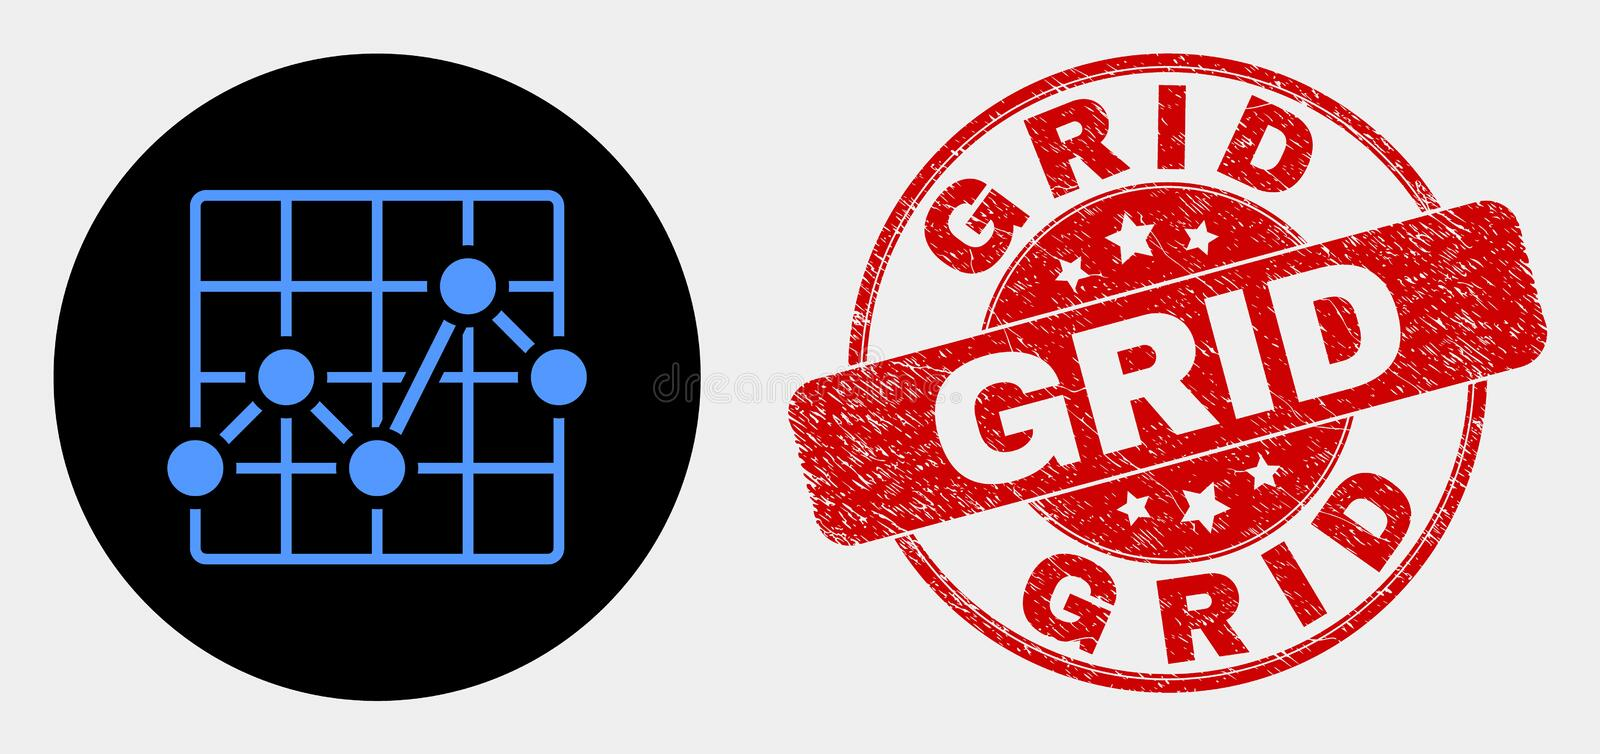 Vector Chart Grid Icon and Scratched Grid Watermark. Rounded chart grid icon and Grid seal stamp. Red rounded scratched seal with Grid caption. Blue chart grid vector illustration